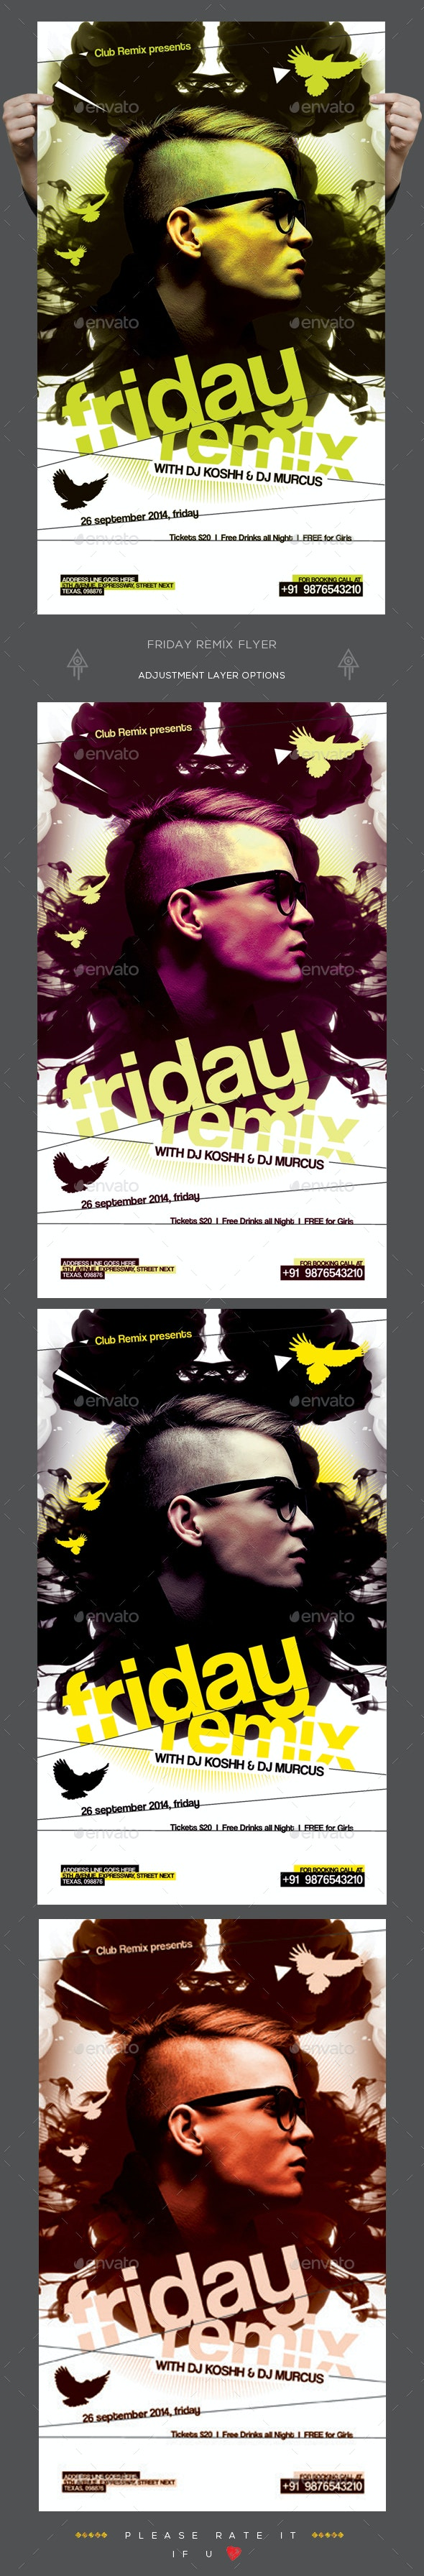 Friday Remix Flyer - Clubs & Parties Events